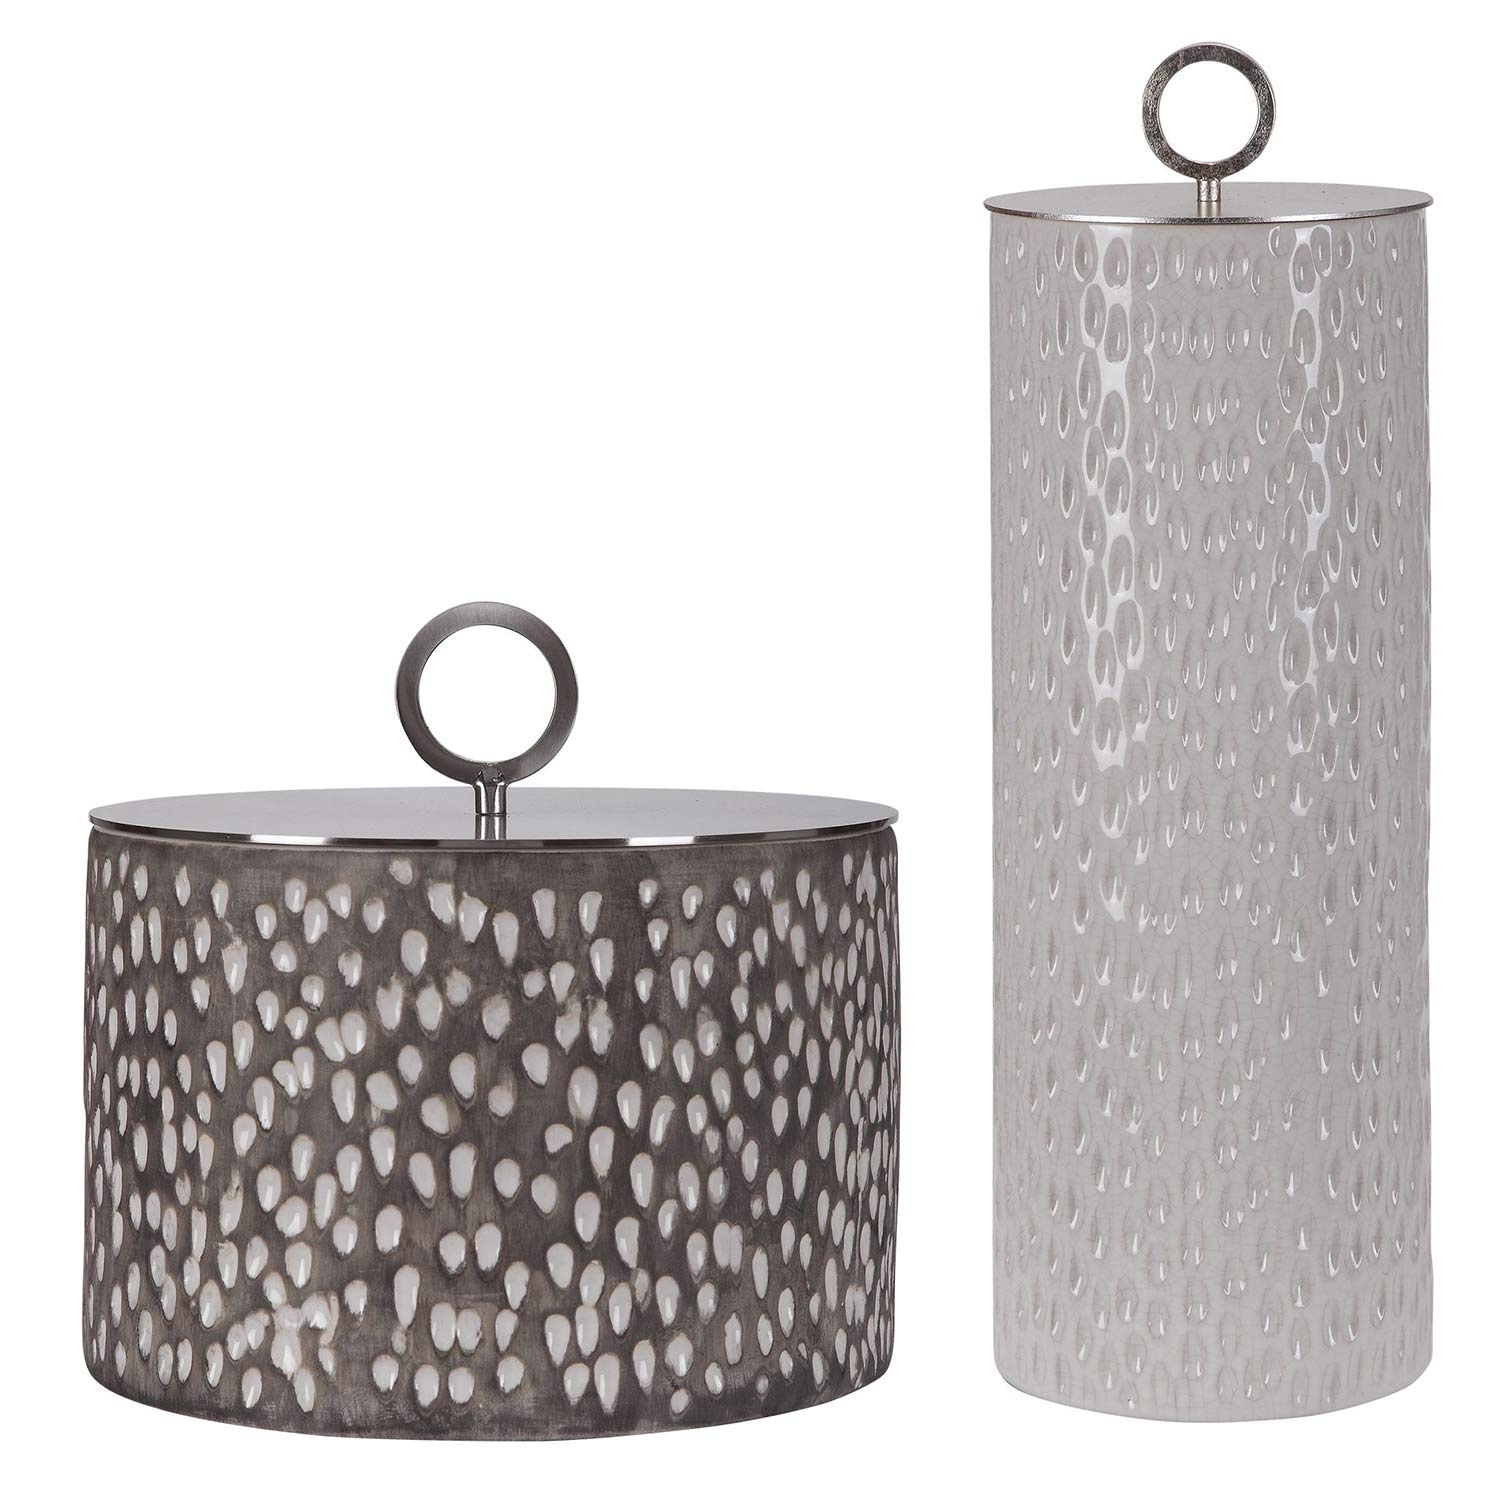 Cyprien Ceramic Containers - Set of 2